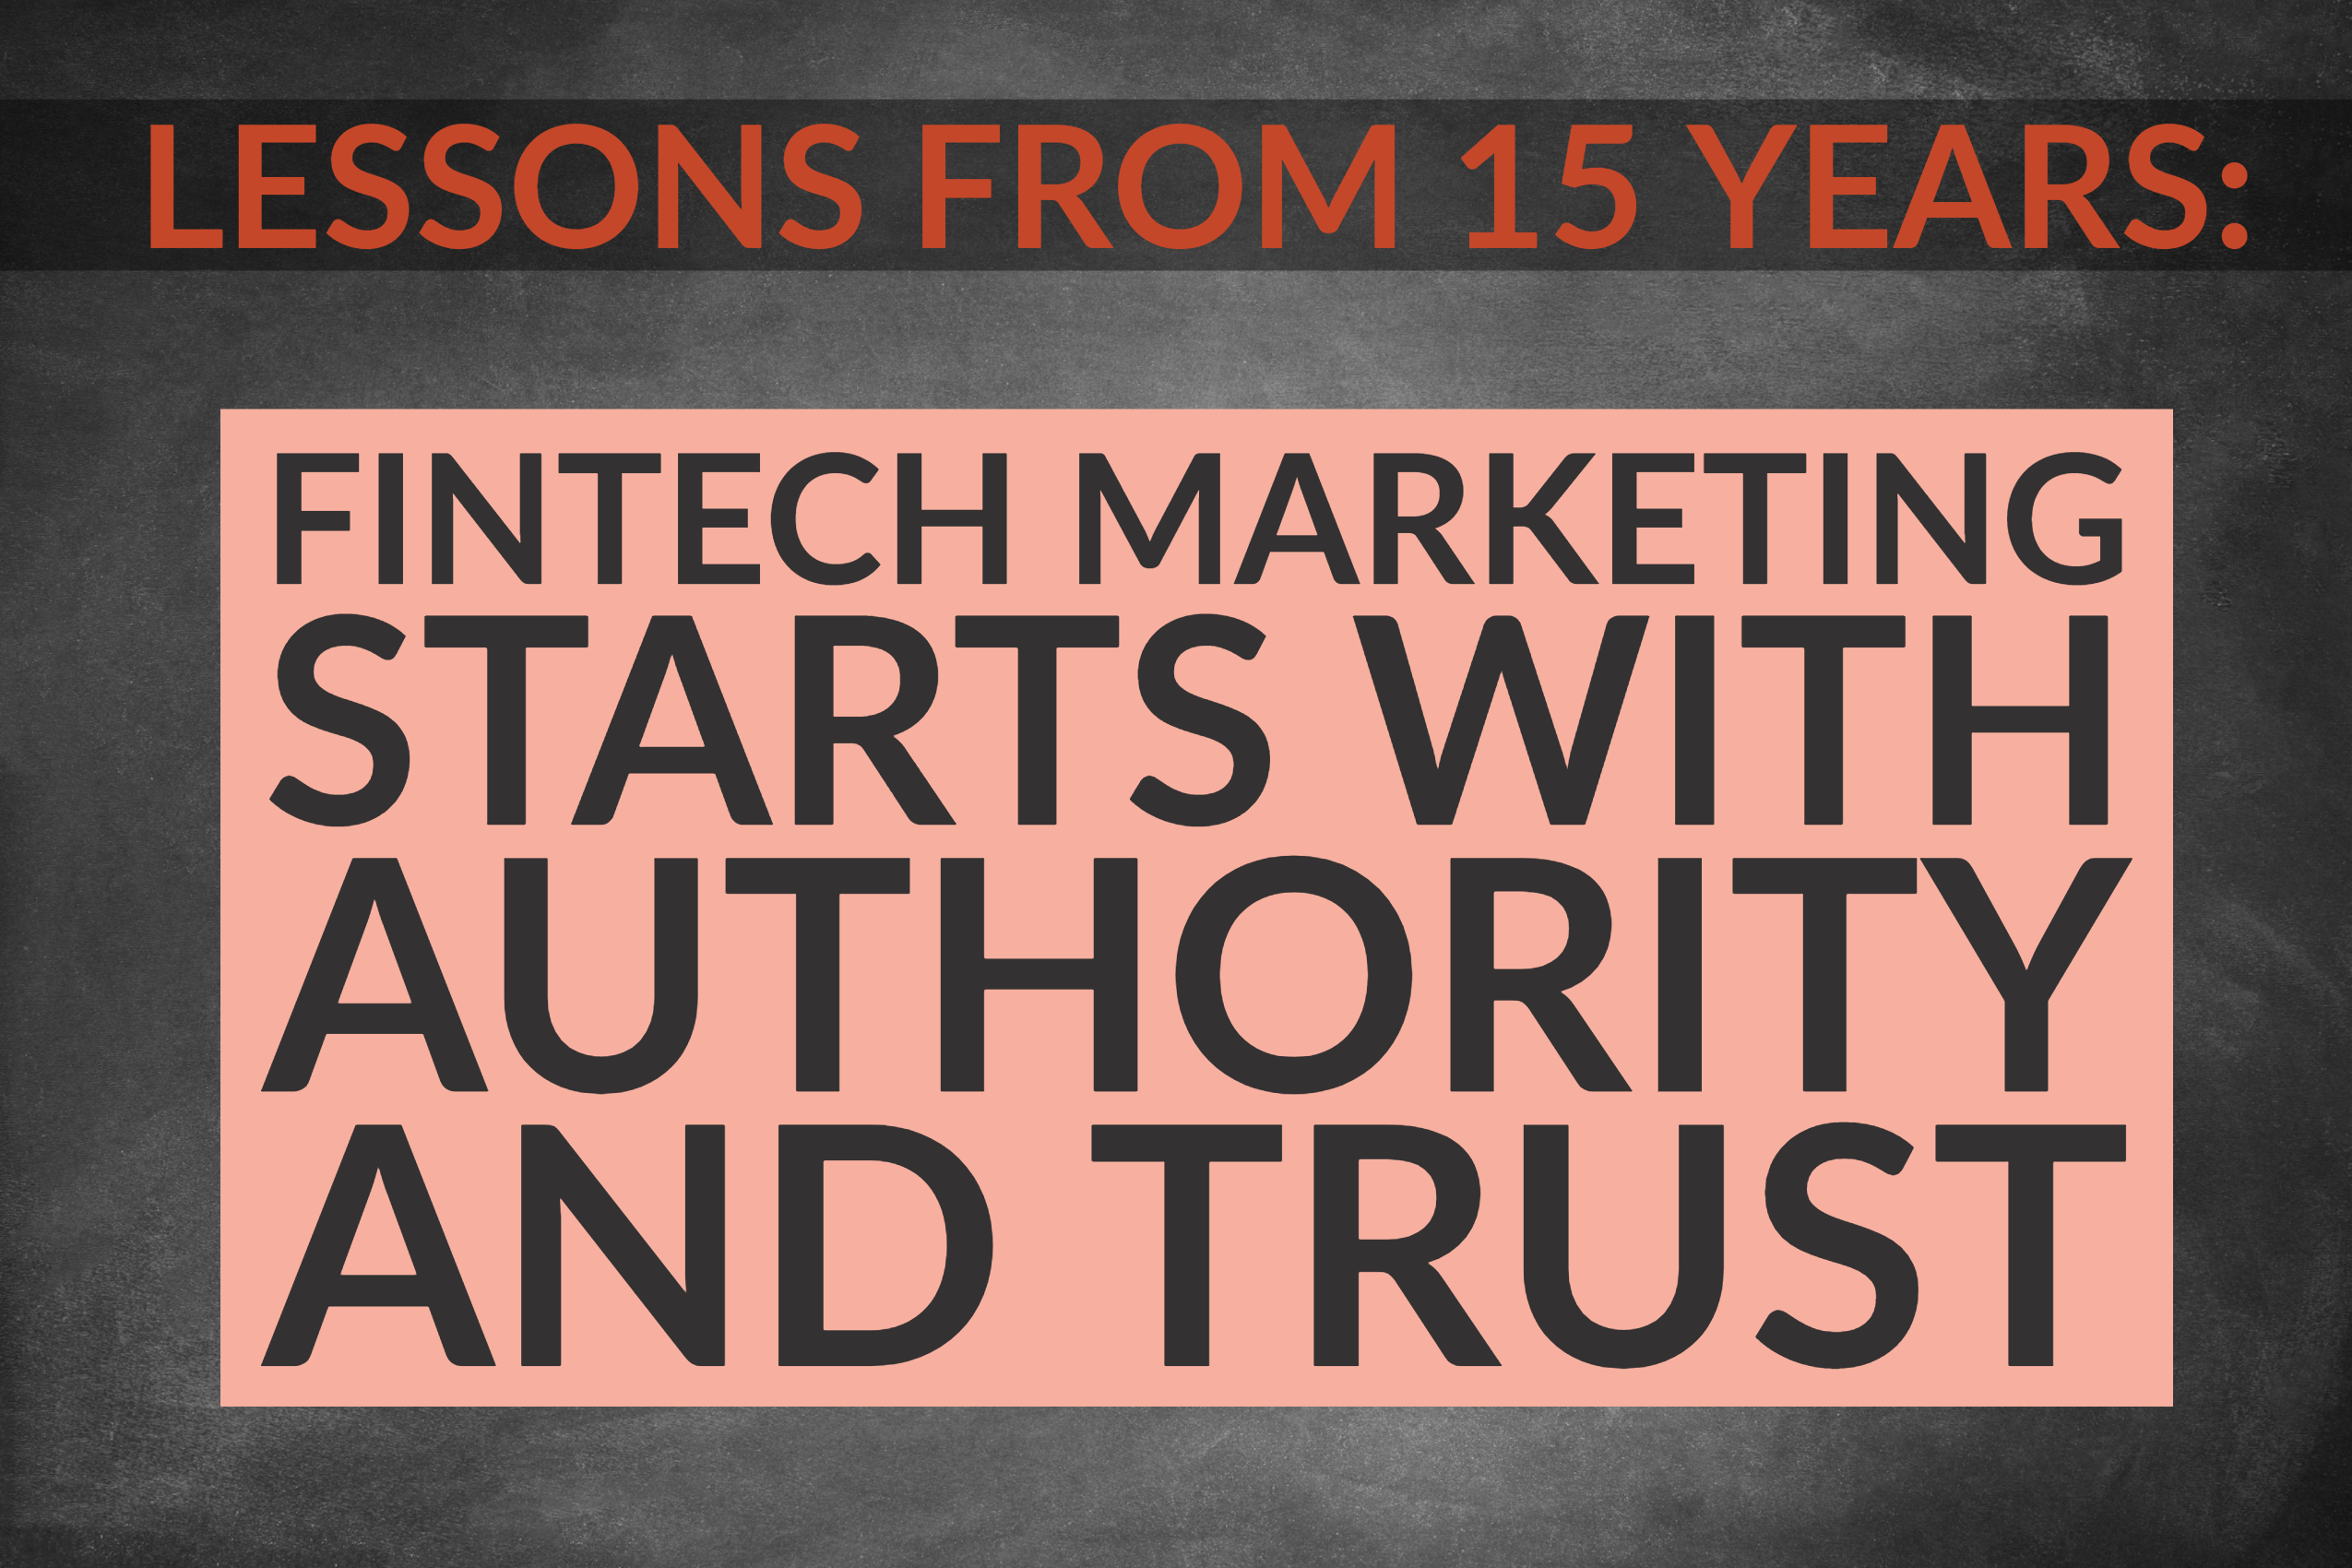 Lessons From 15 Years Of Marketing_ FinTech Marketing Starts With Authority And Trust